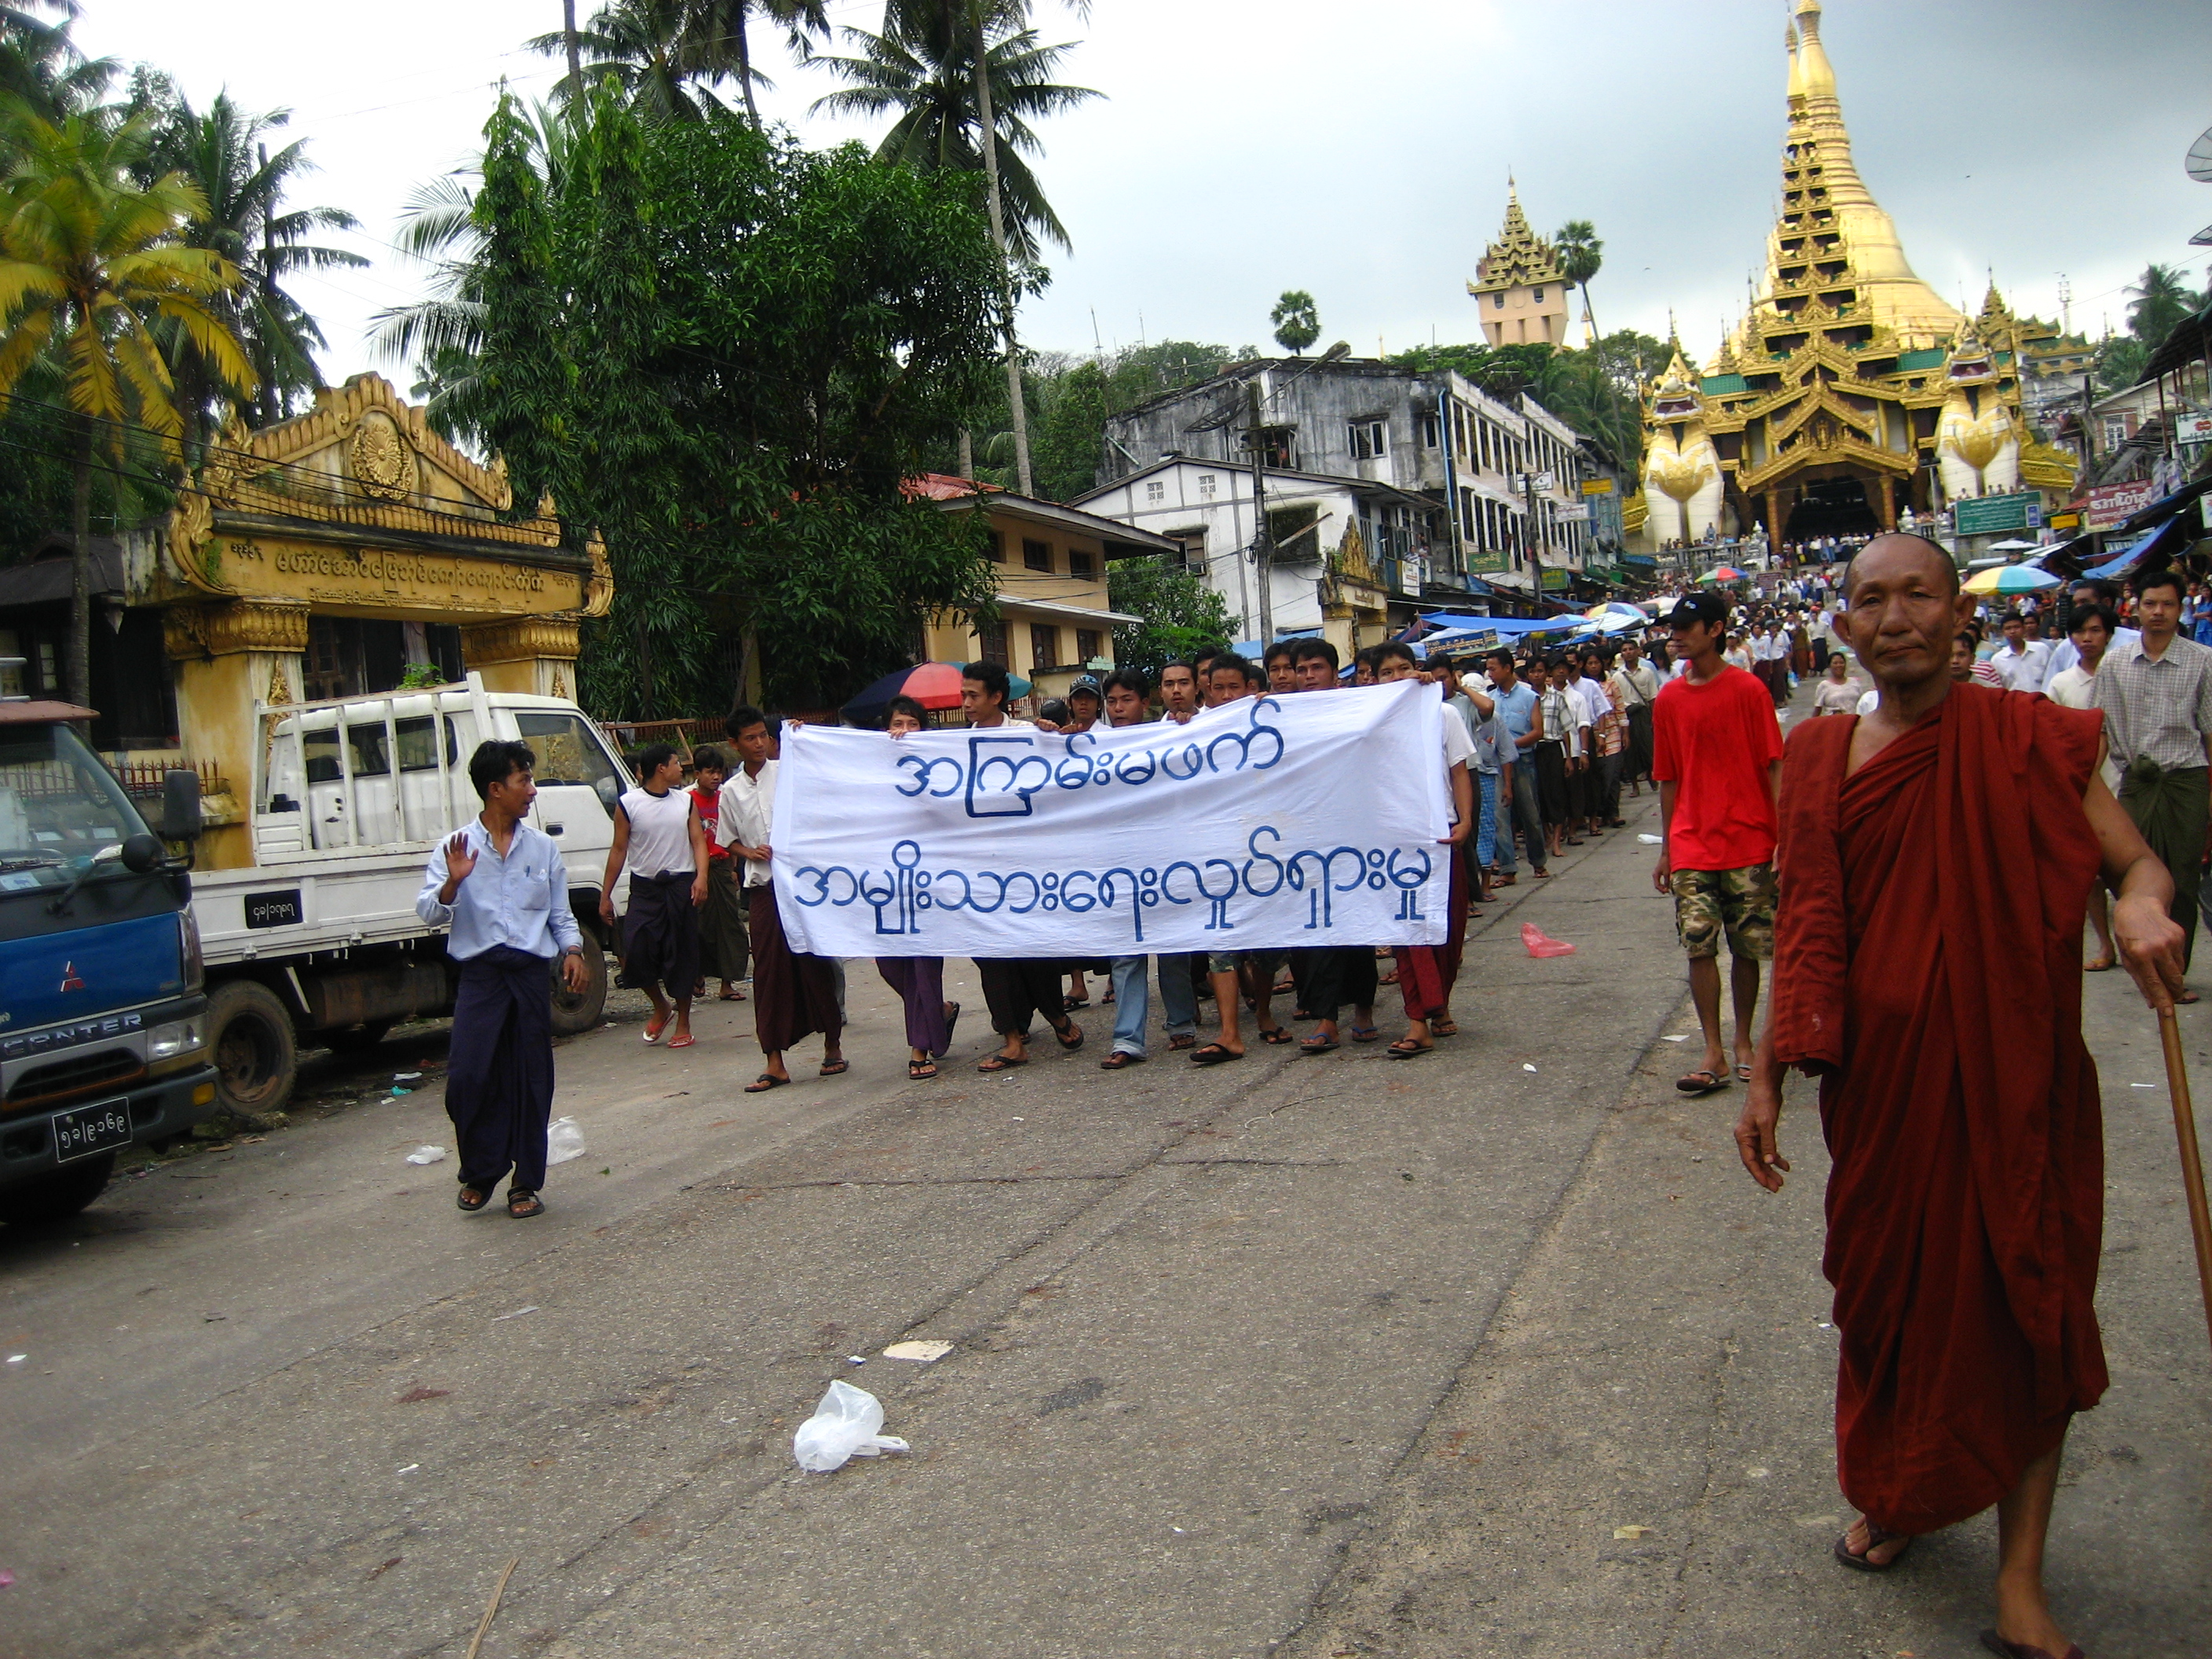 Protesters with a banner that reads 'Non-violence: national movement' parade past Shwedagon pagoda in Yangon, Myanmar. Photo by Racoles/Wikimedia CC BY-NC-ND 2.0 licence